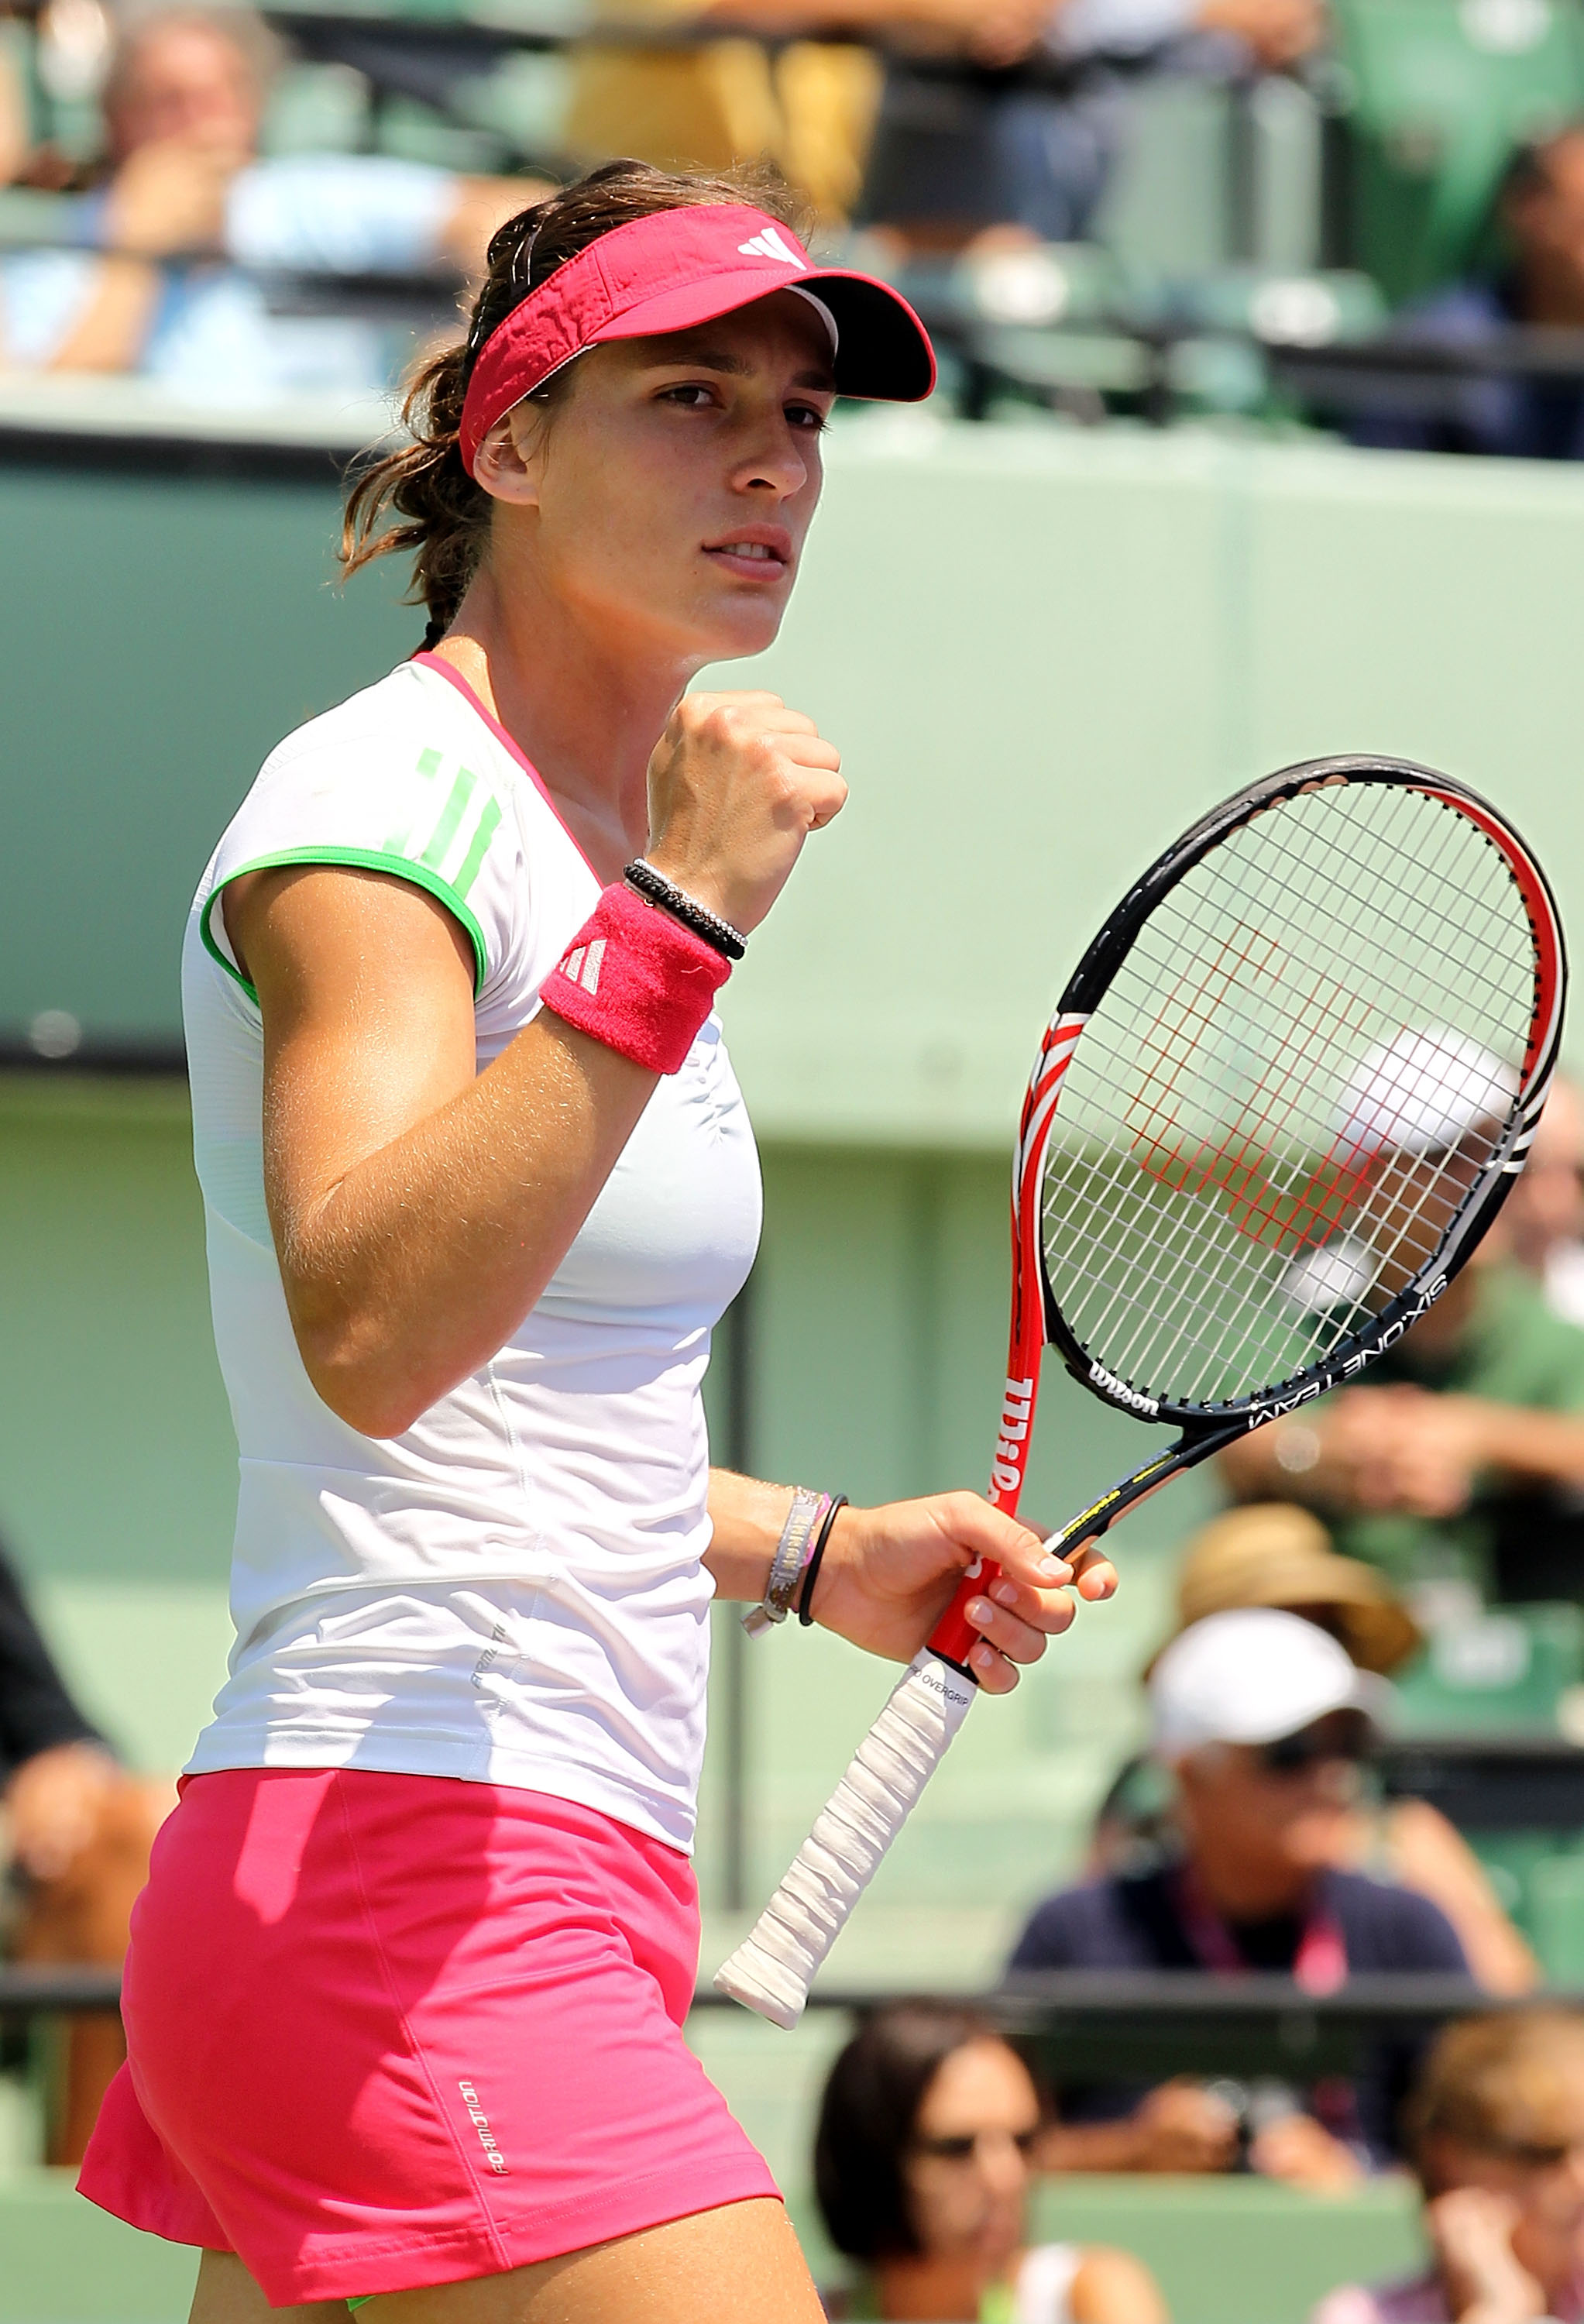 KEY BISCAYNE, FL - MARCH 31:  Andrea Petkovic of Germany reacts after she won the first set against Maria Sharapova of Russia during their women's semifinal match at the Sony Ericsson Open at Crandon Park Tennis Center on March 31, 2011 in Key Biscayne, F